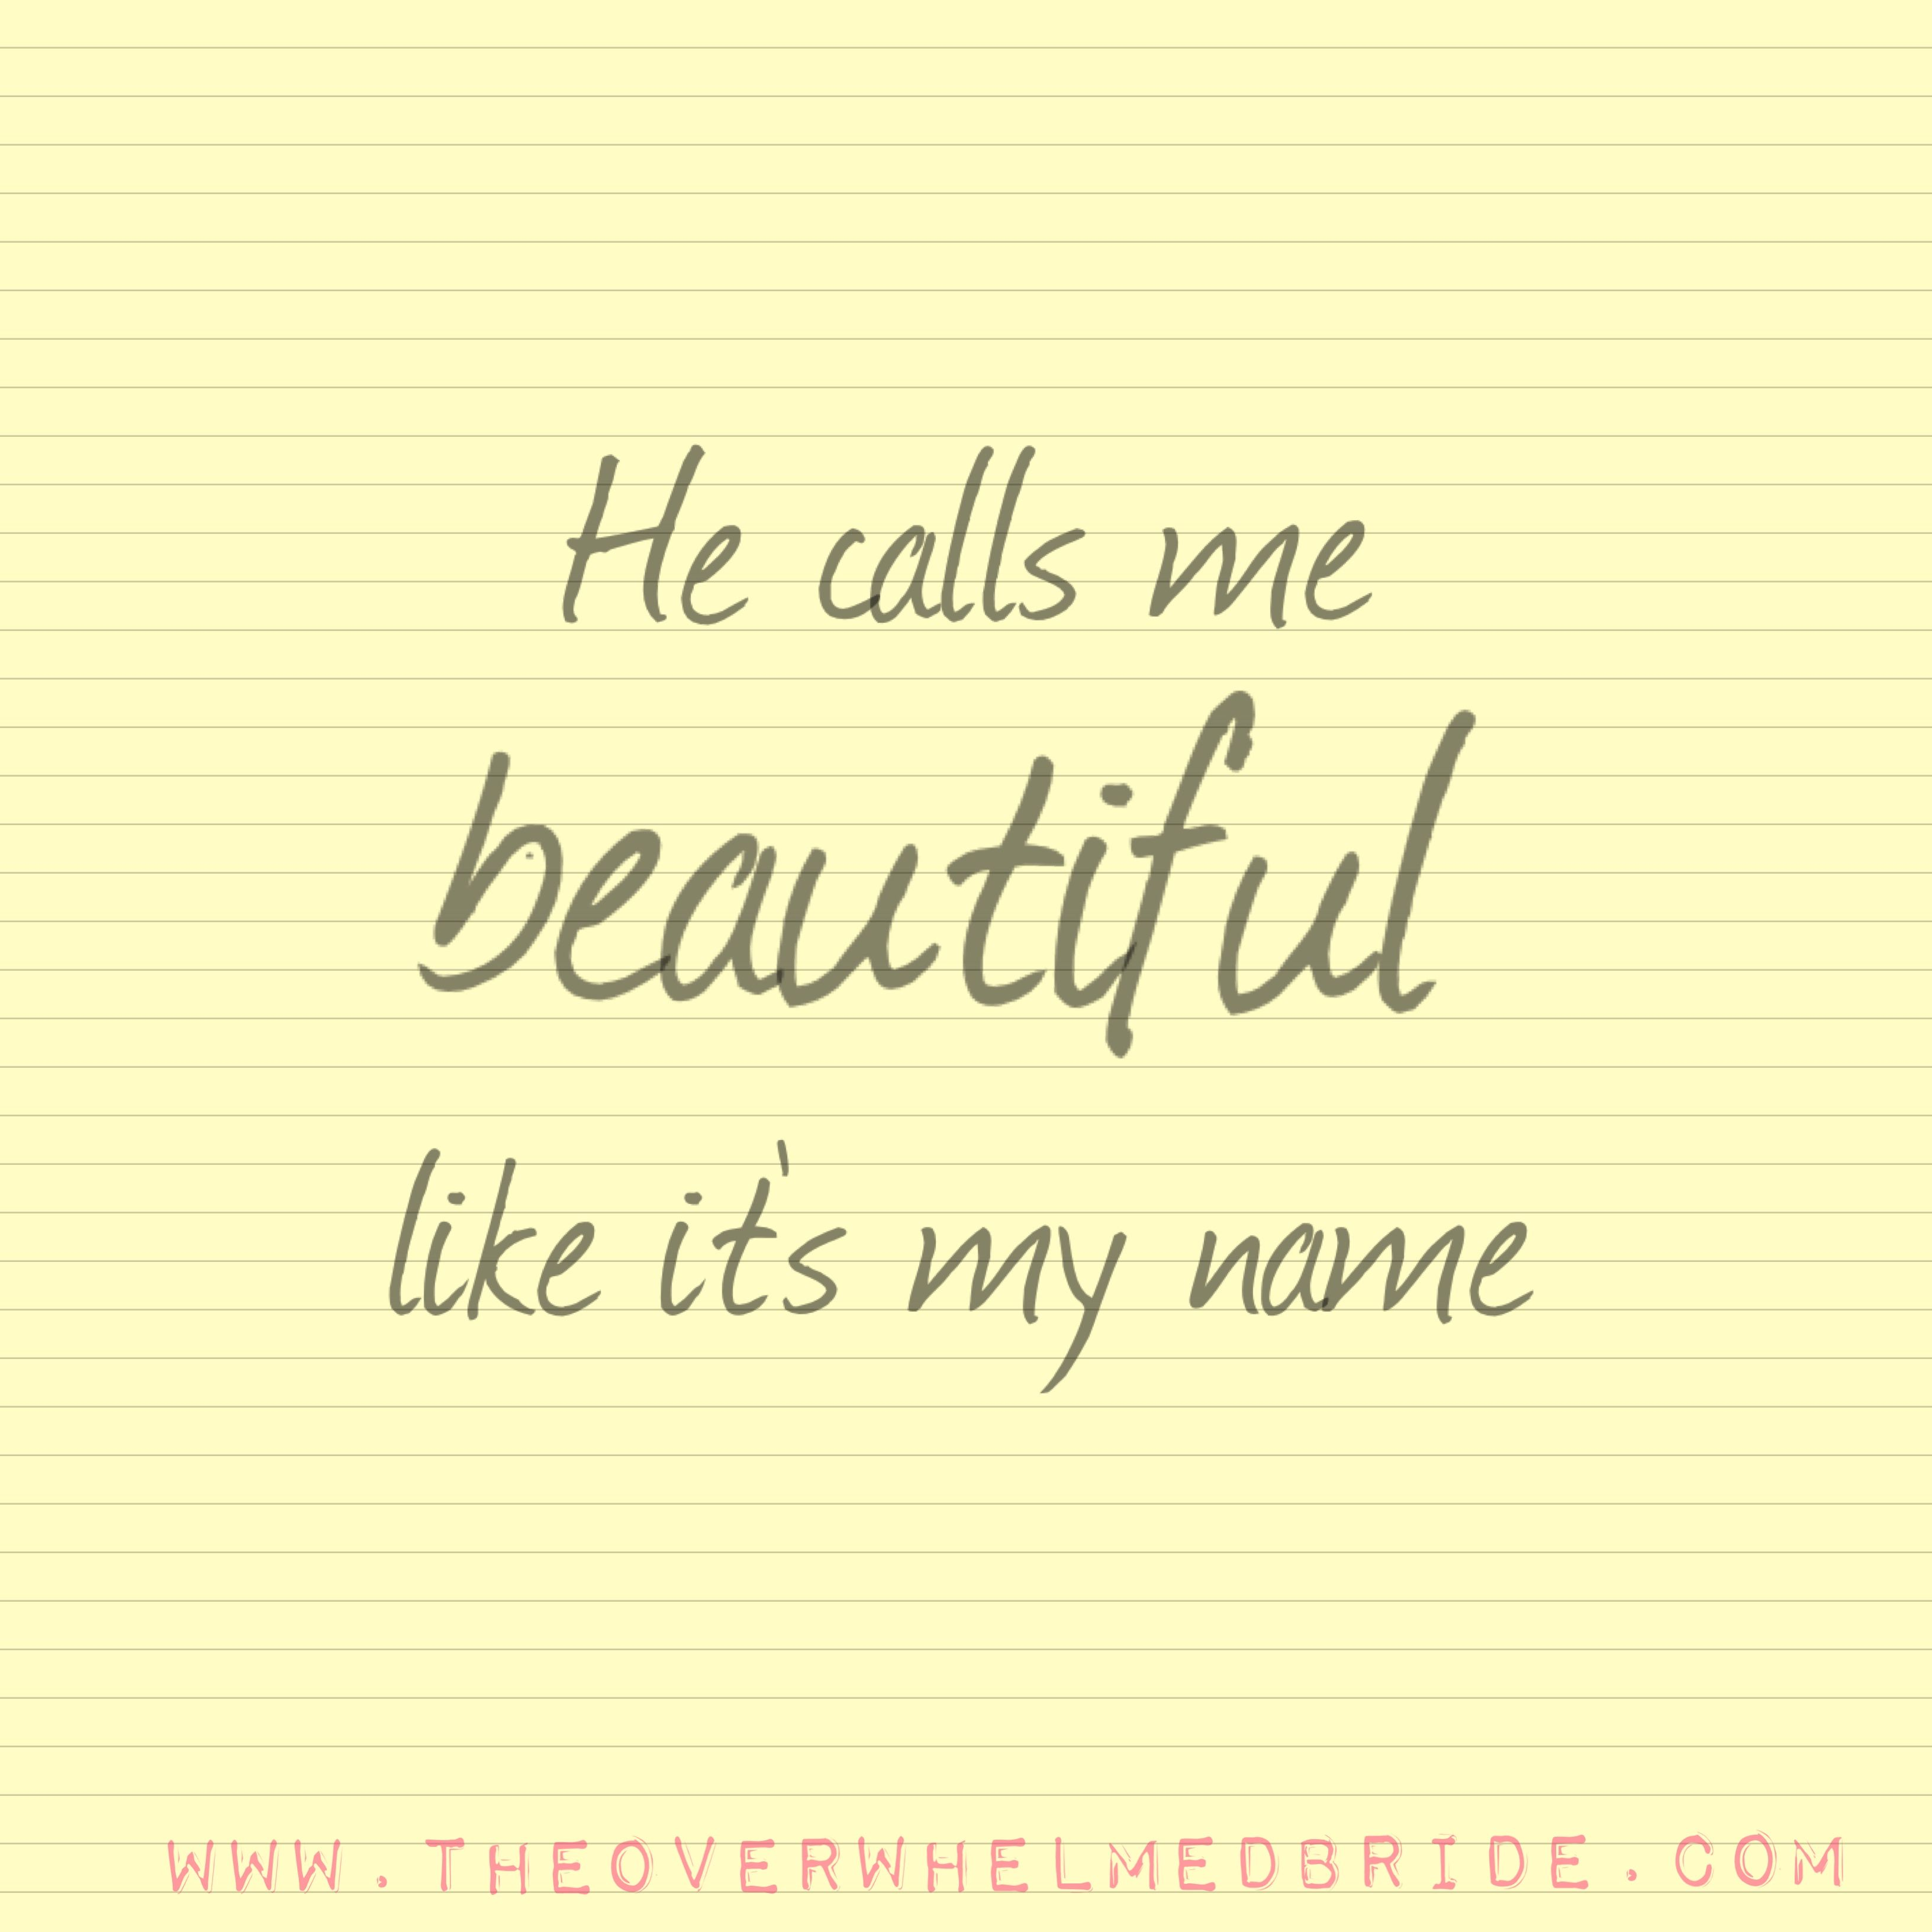 What Does It Mean When A Guy Calls You Gorgeous